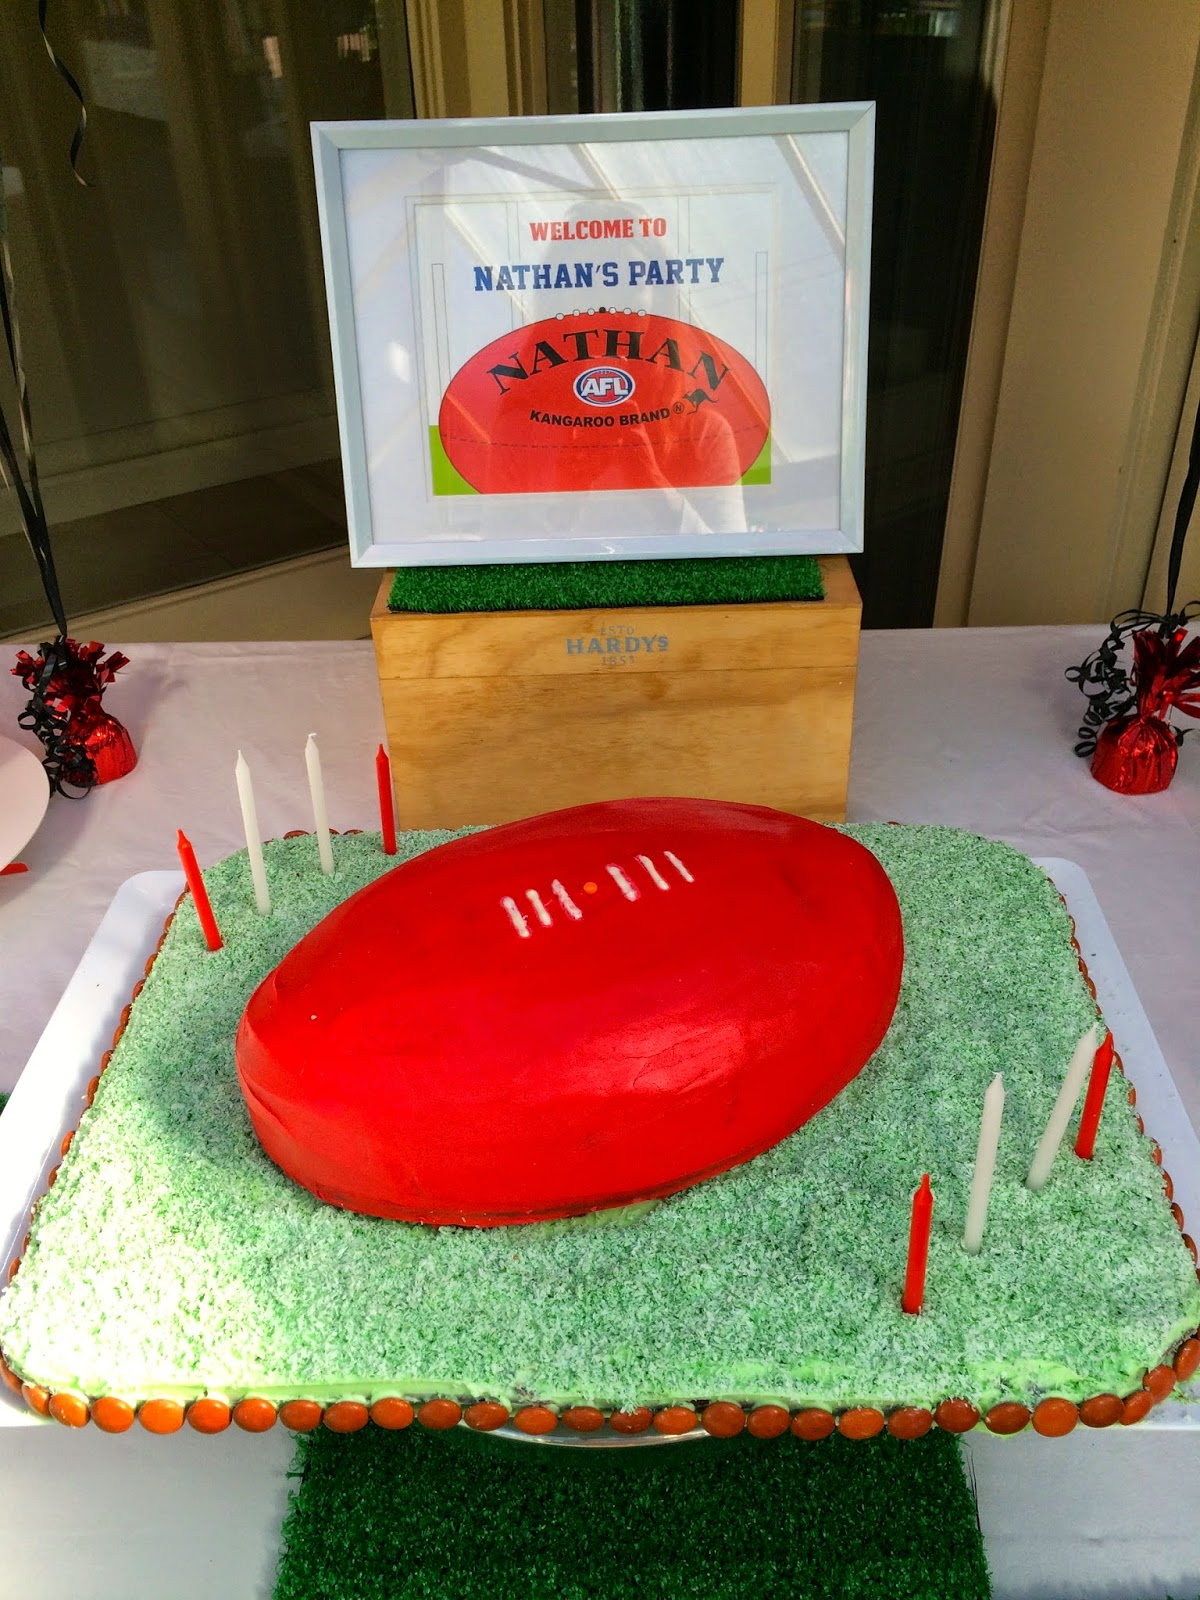 Seventies Baby How To Host An Afl Birthday Party